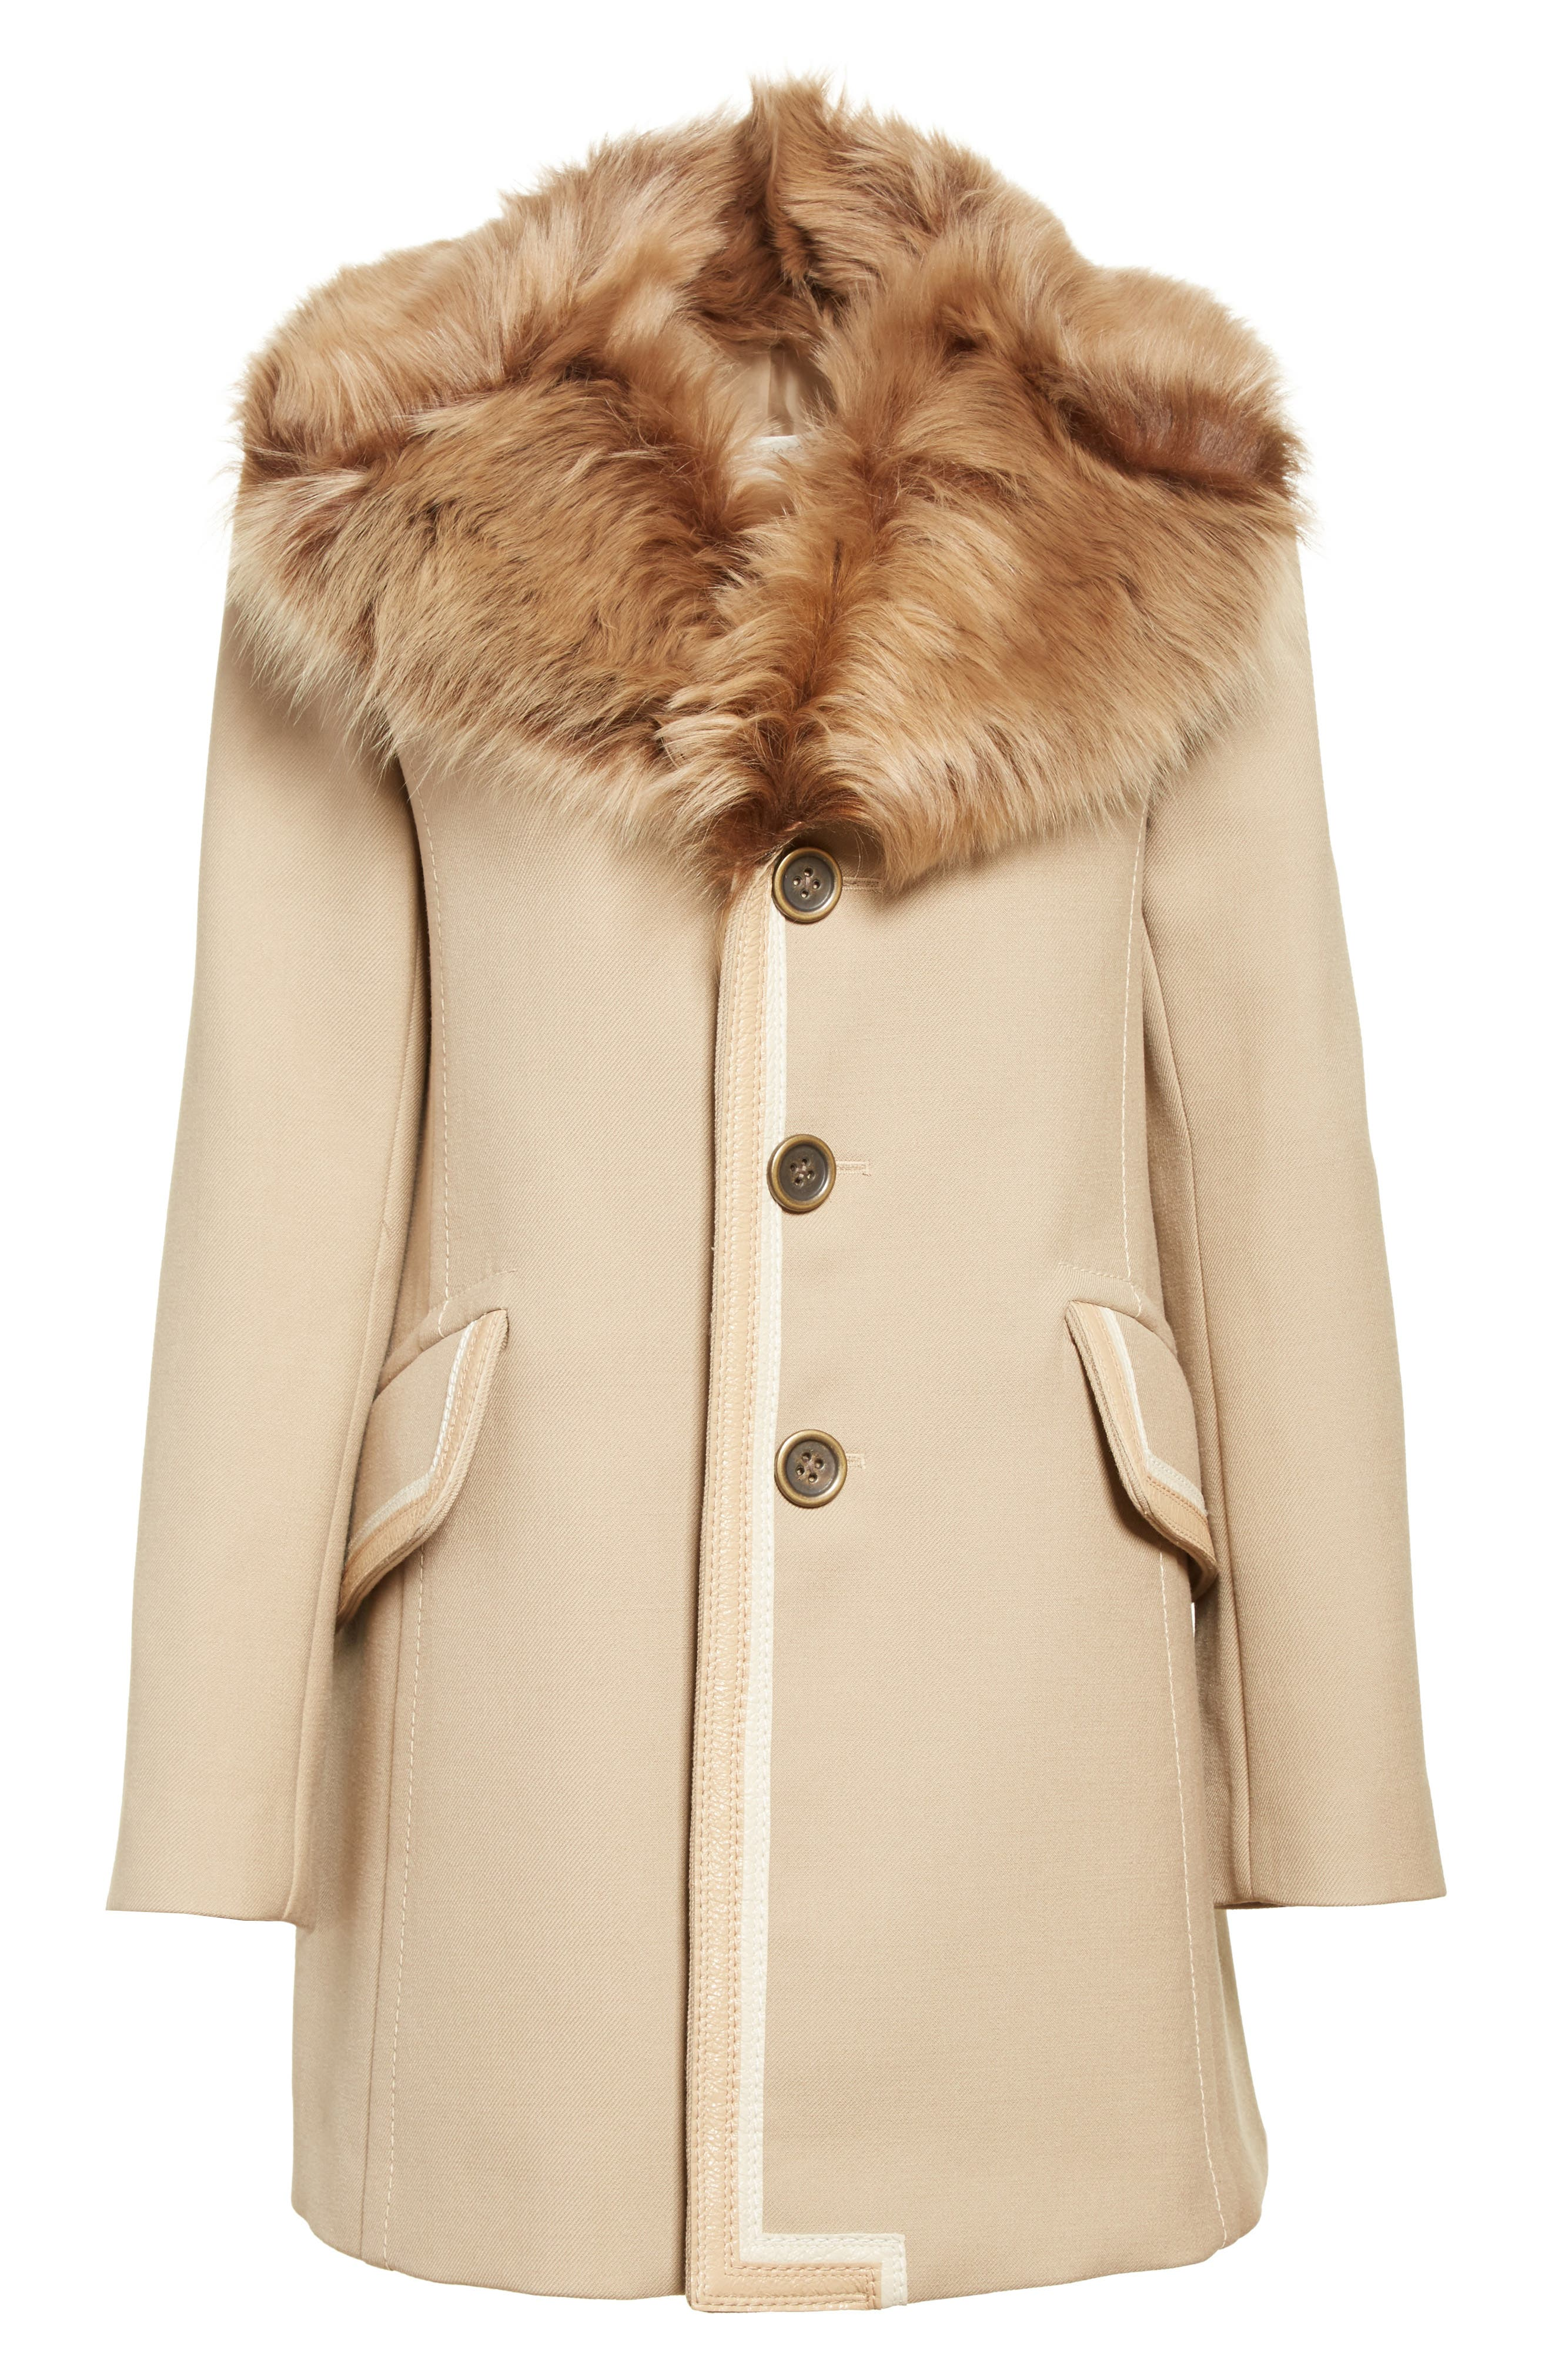 Double Face Wool Blend Coat with Removable Genuine Lamb Fur Collar,                             Alternate thumbnail 5, color,                             200